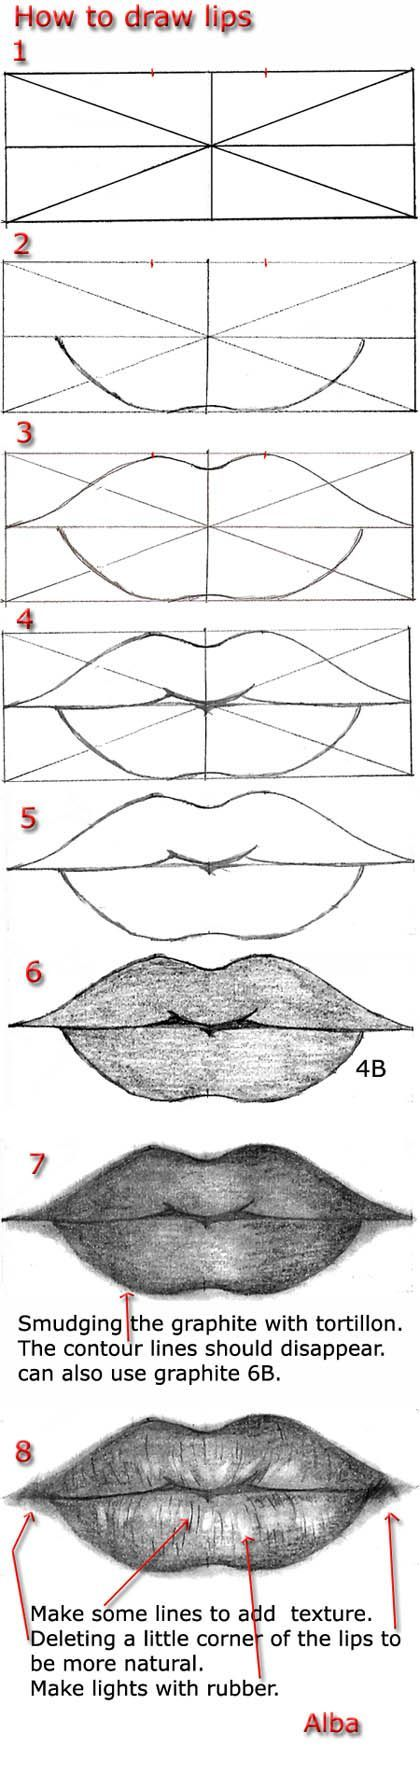 How to draw realistic lips.